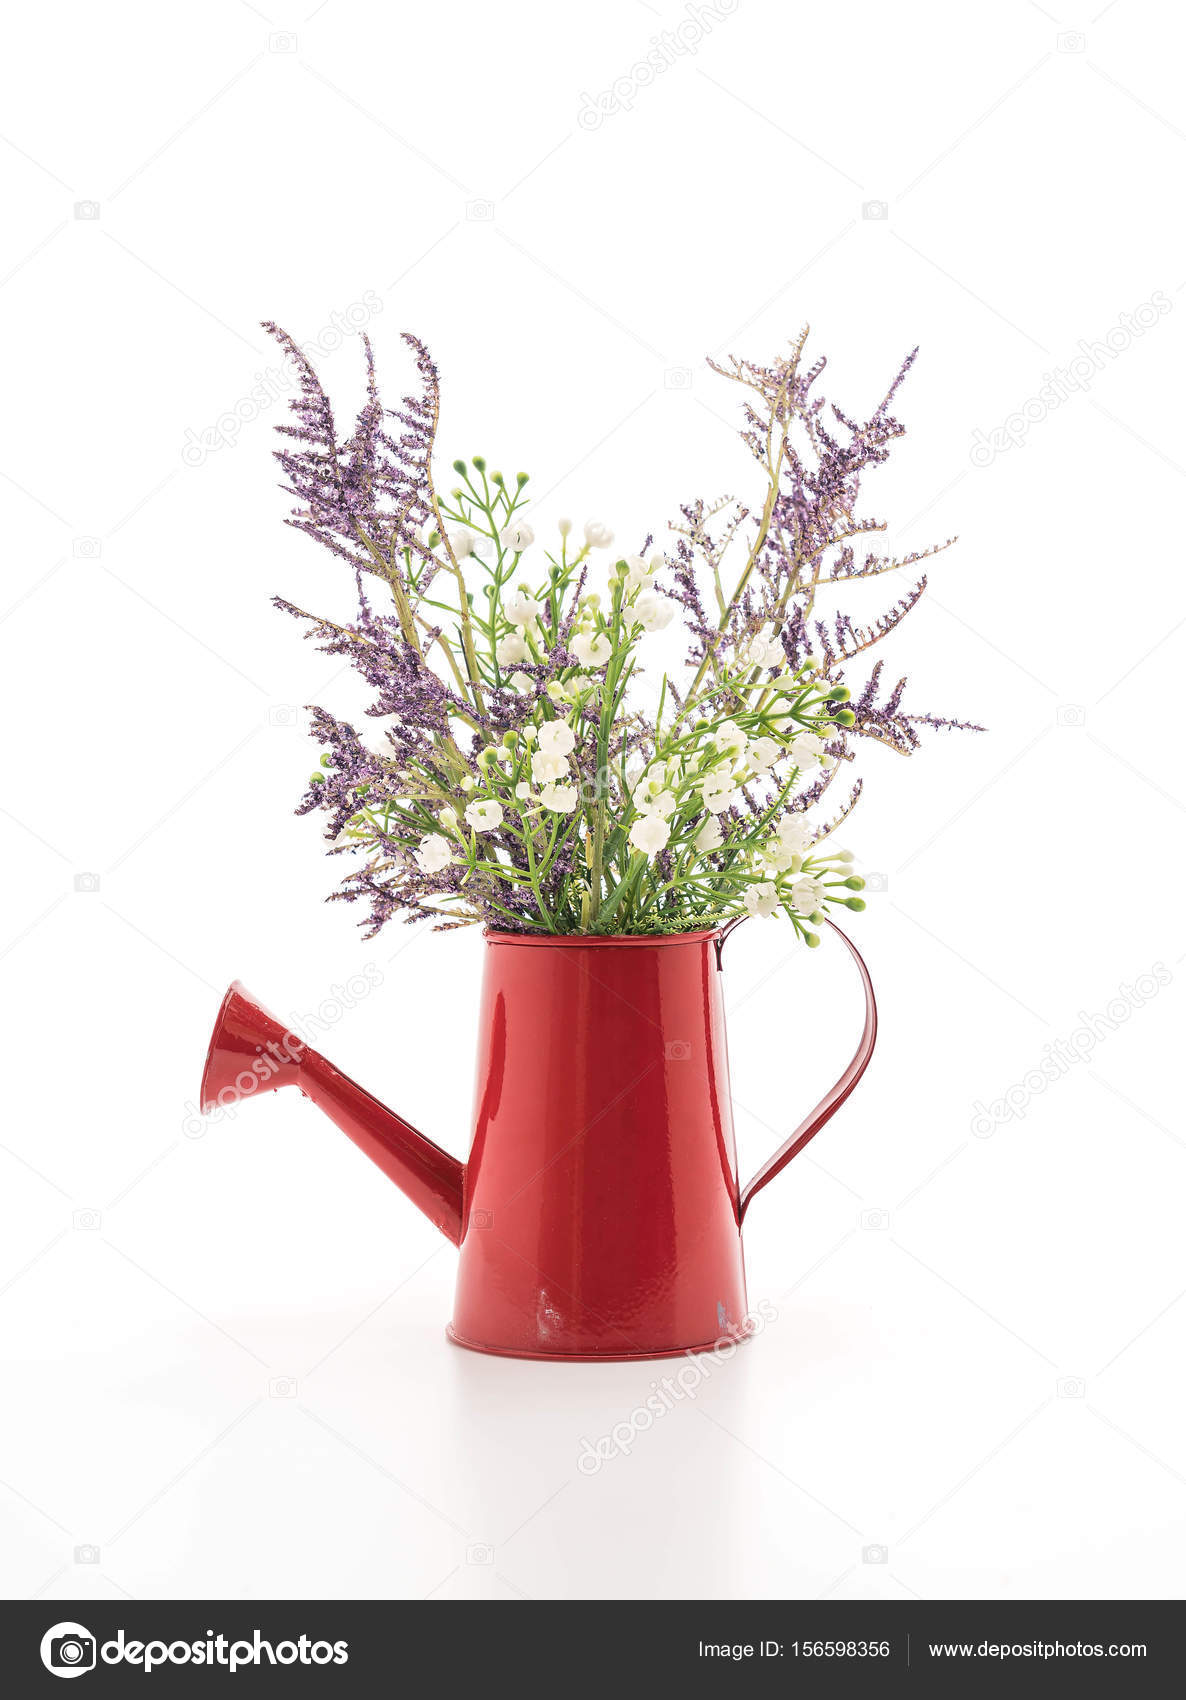 Statice and caspia flower in vase stock photo topntp 156598356 statice and caspia flower in vase stock photo reviewsmspy